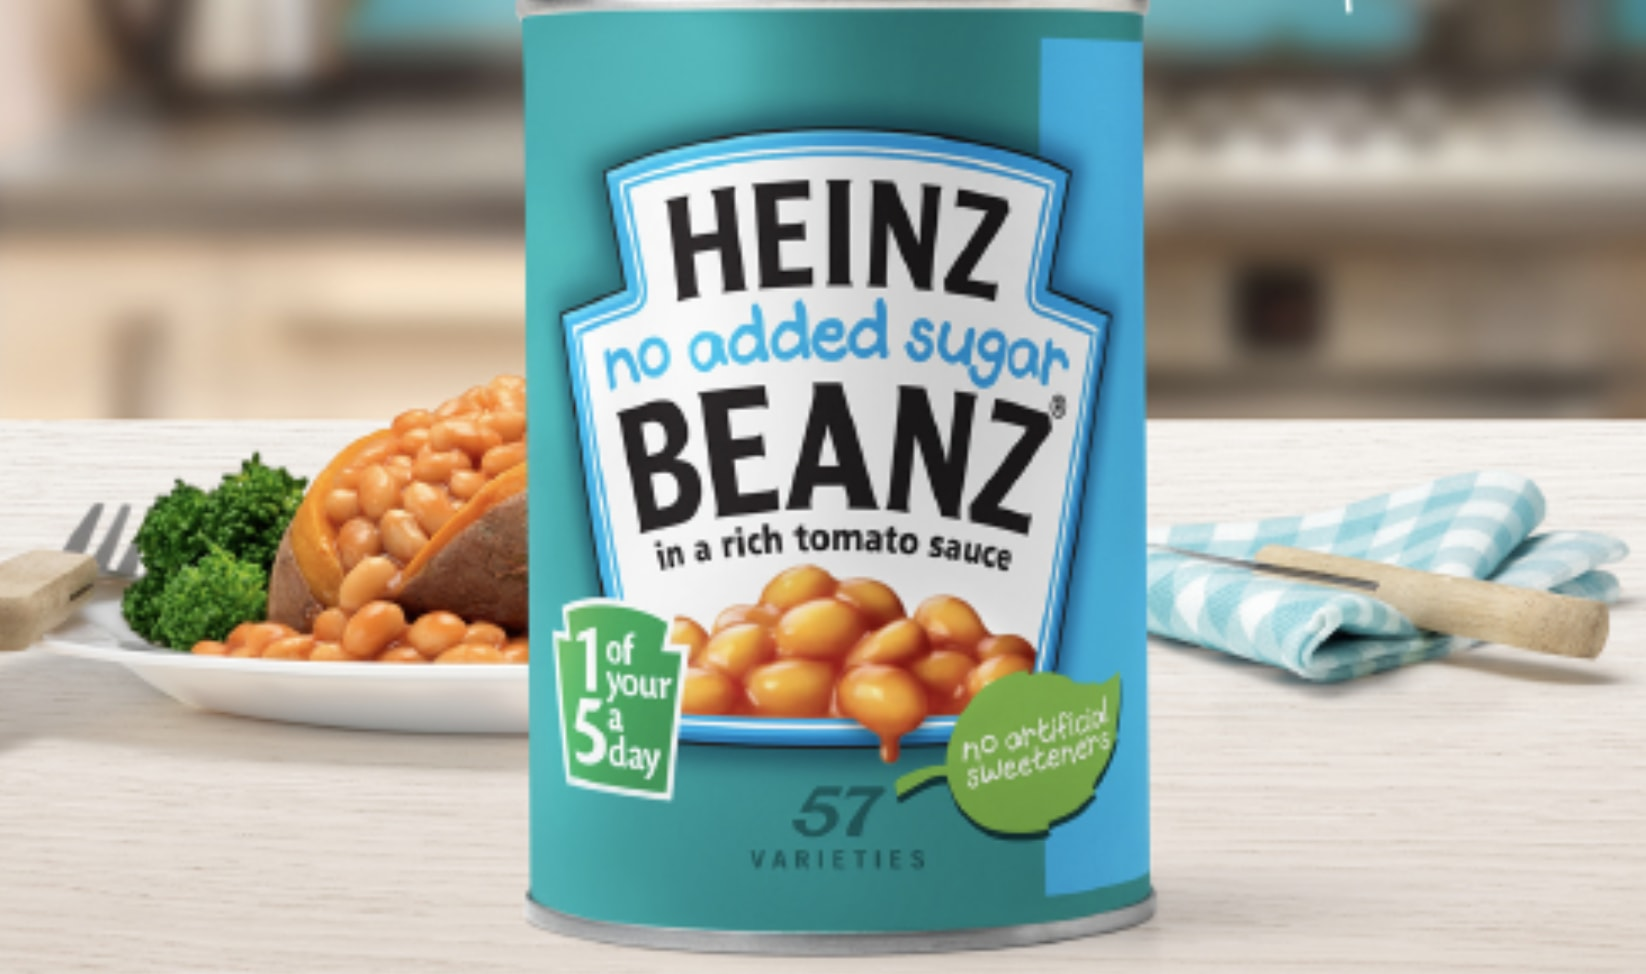 No Added Sugar beans from Heinz